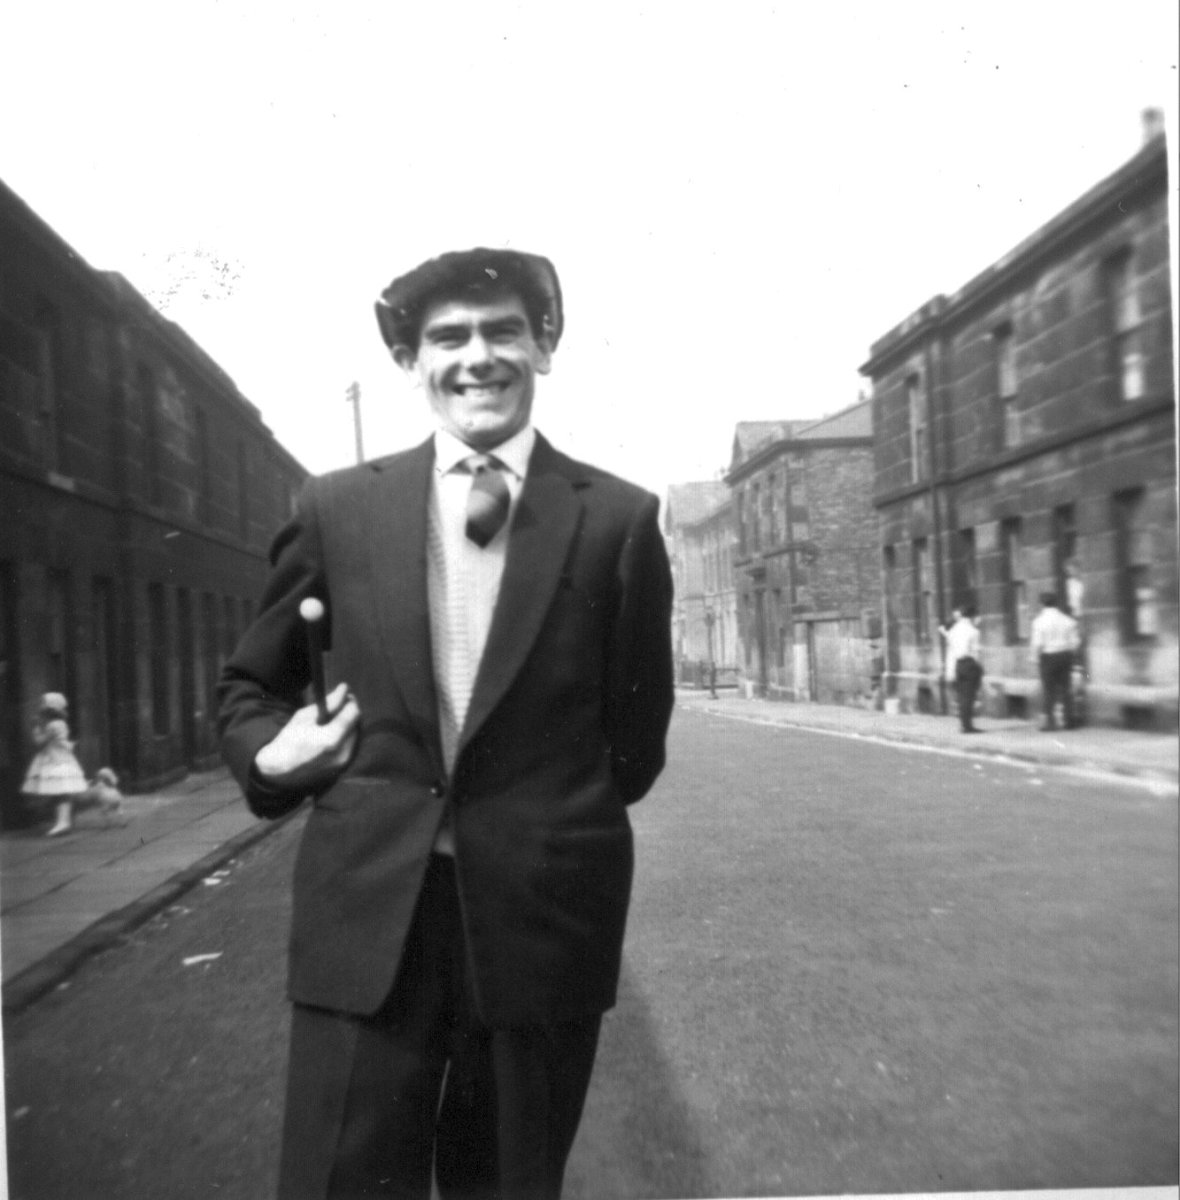 Tommy standing in the Street wearing a tophat the top of which cannot be seen properly